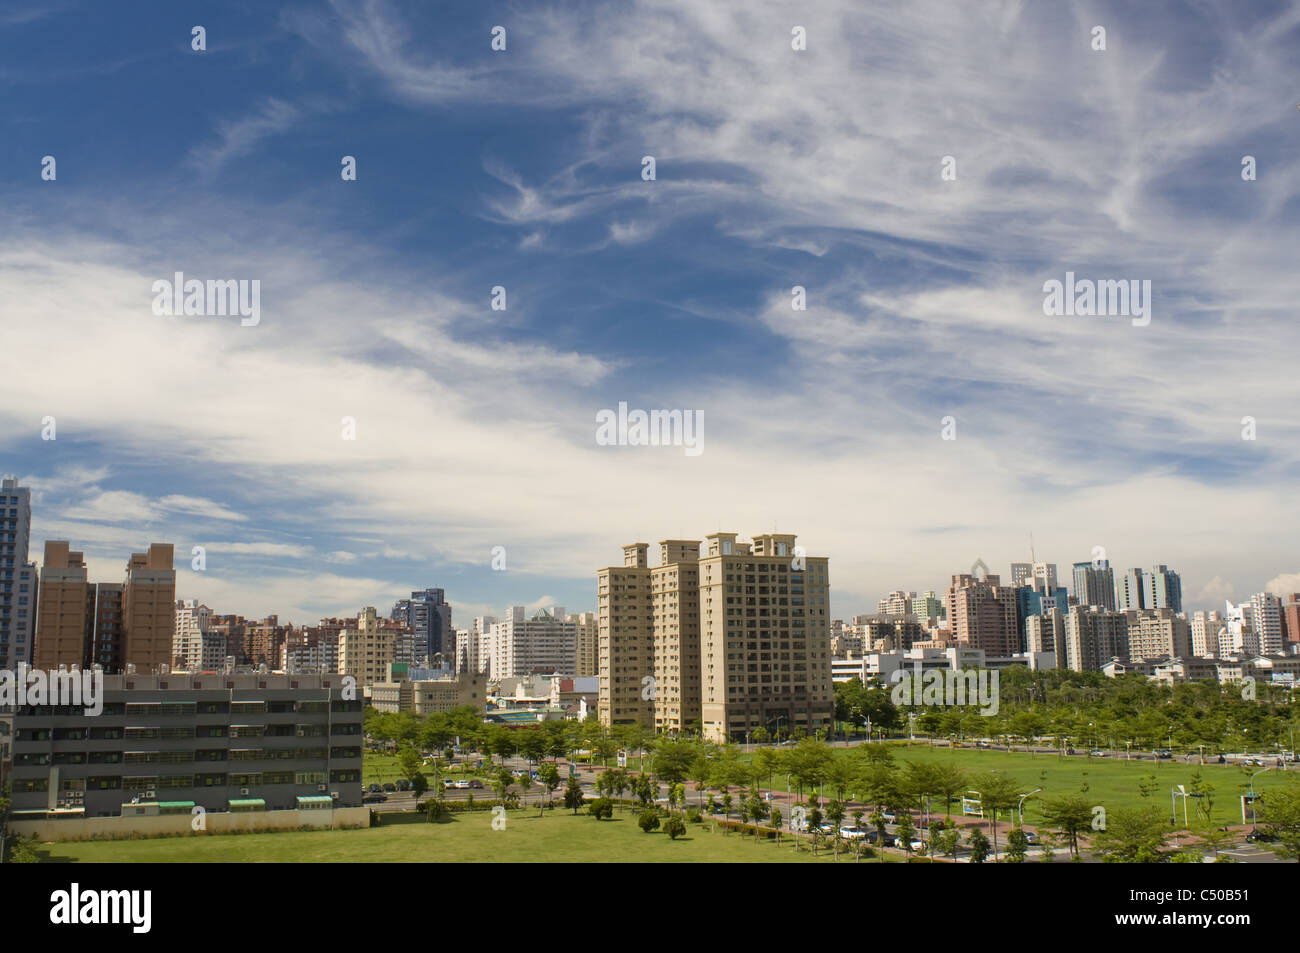 Regional landscape at city of kaohsiung taiwan - Stock Image